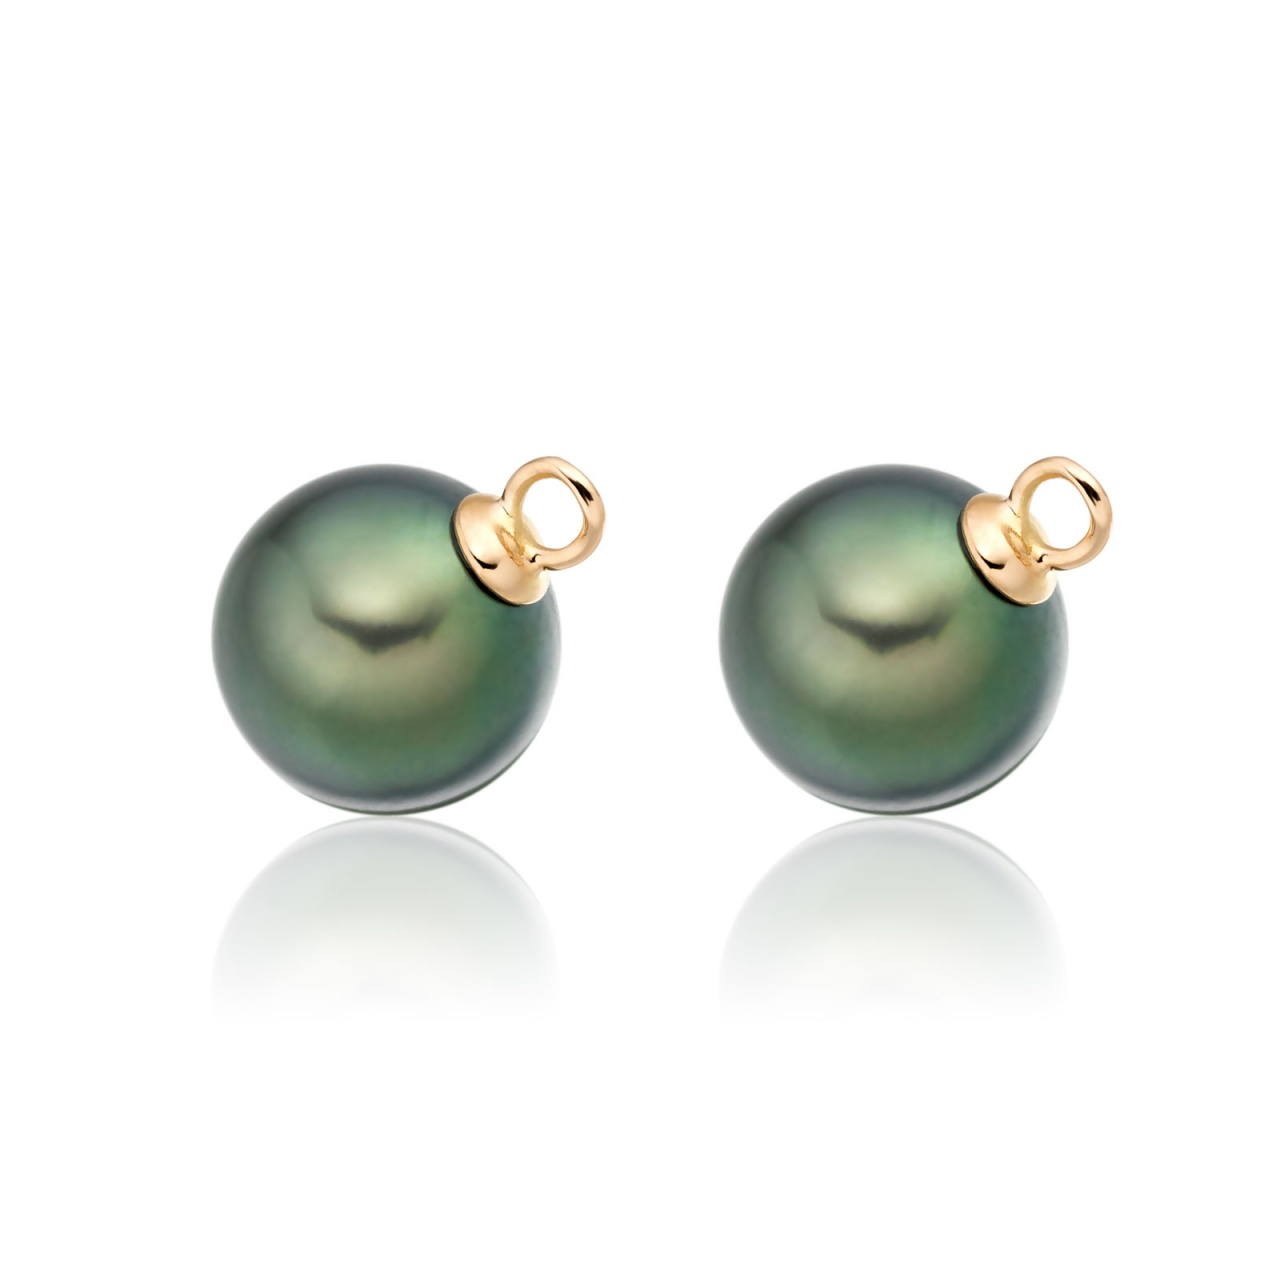 Pair of Peacock Tahitian Pearls for Rose Gold Leverback Earrings - TELPRG0628-1